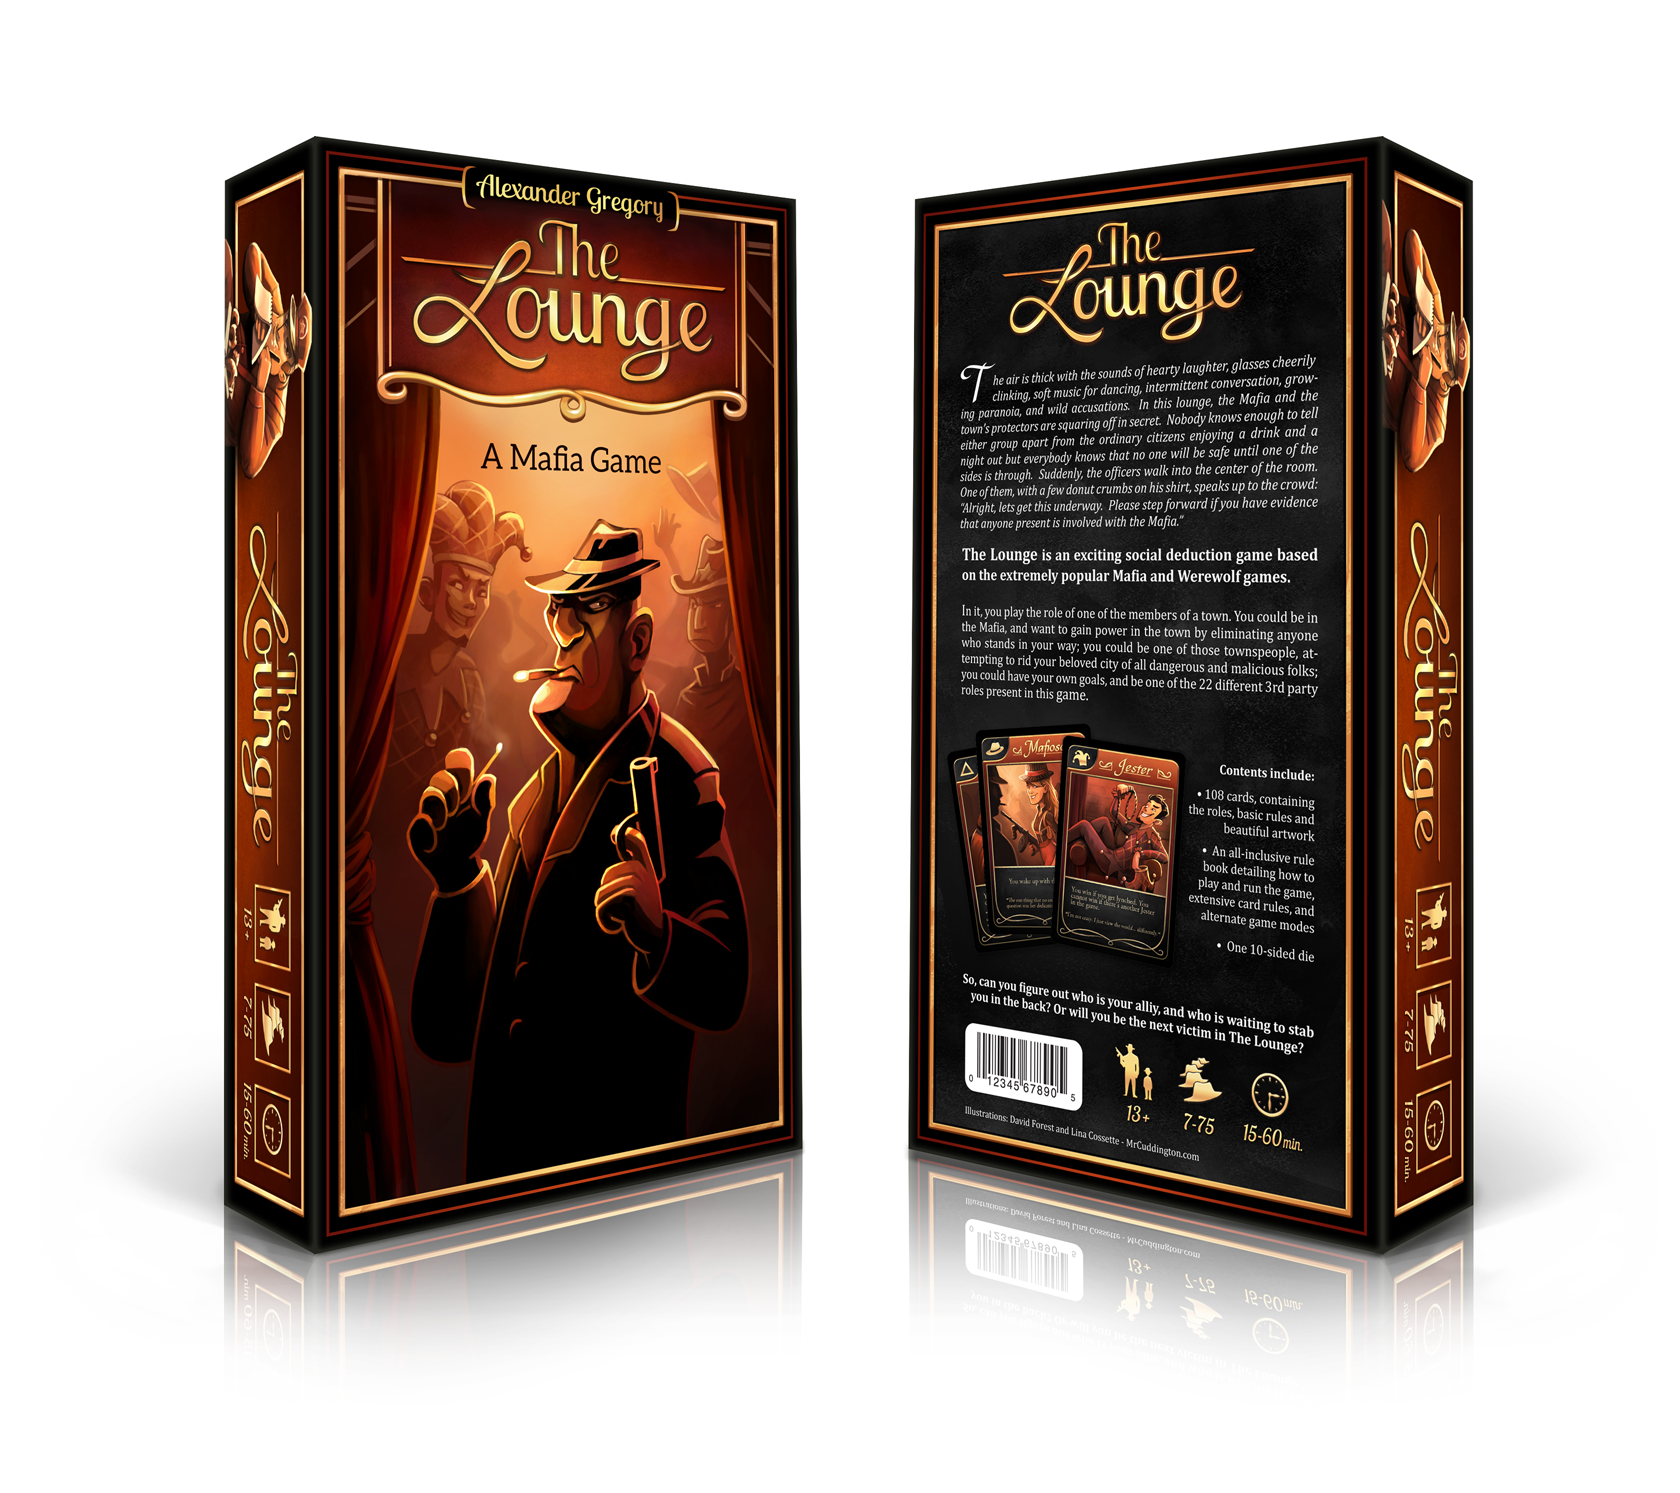 The Lounge is a game based on Mafia with over 40 different